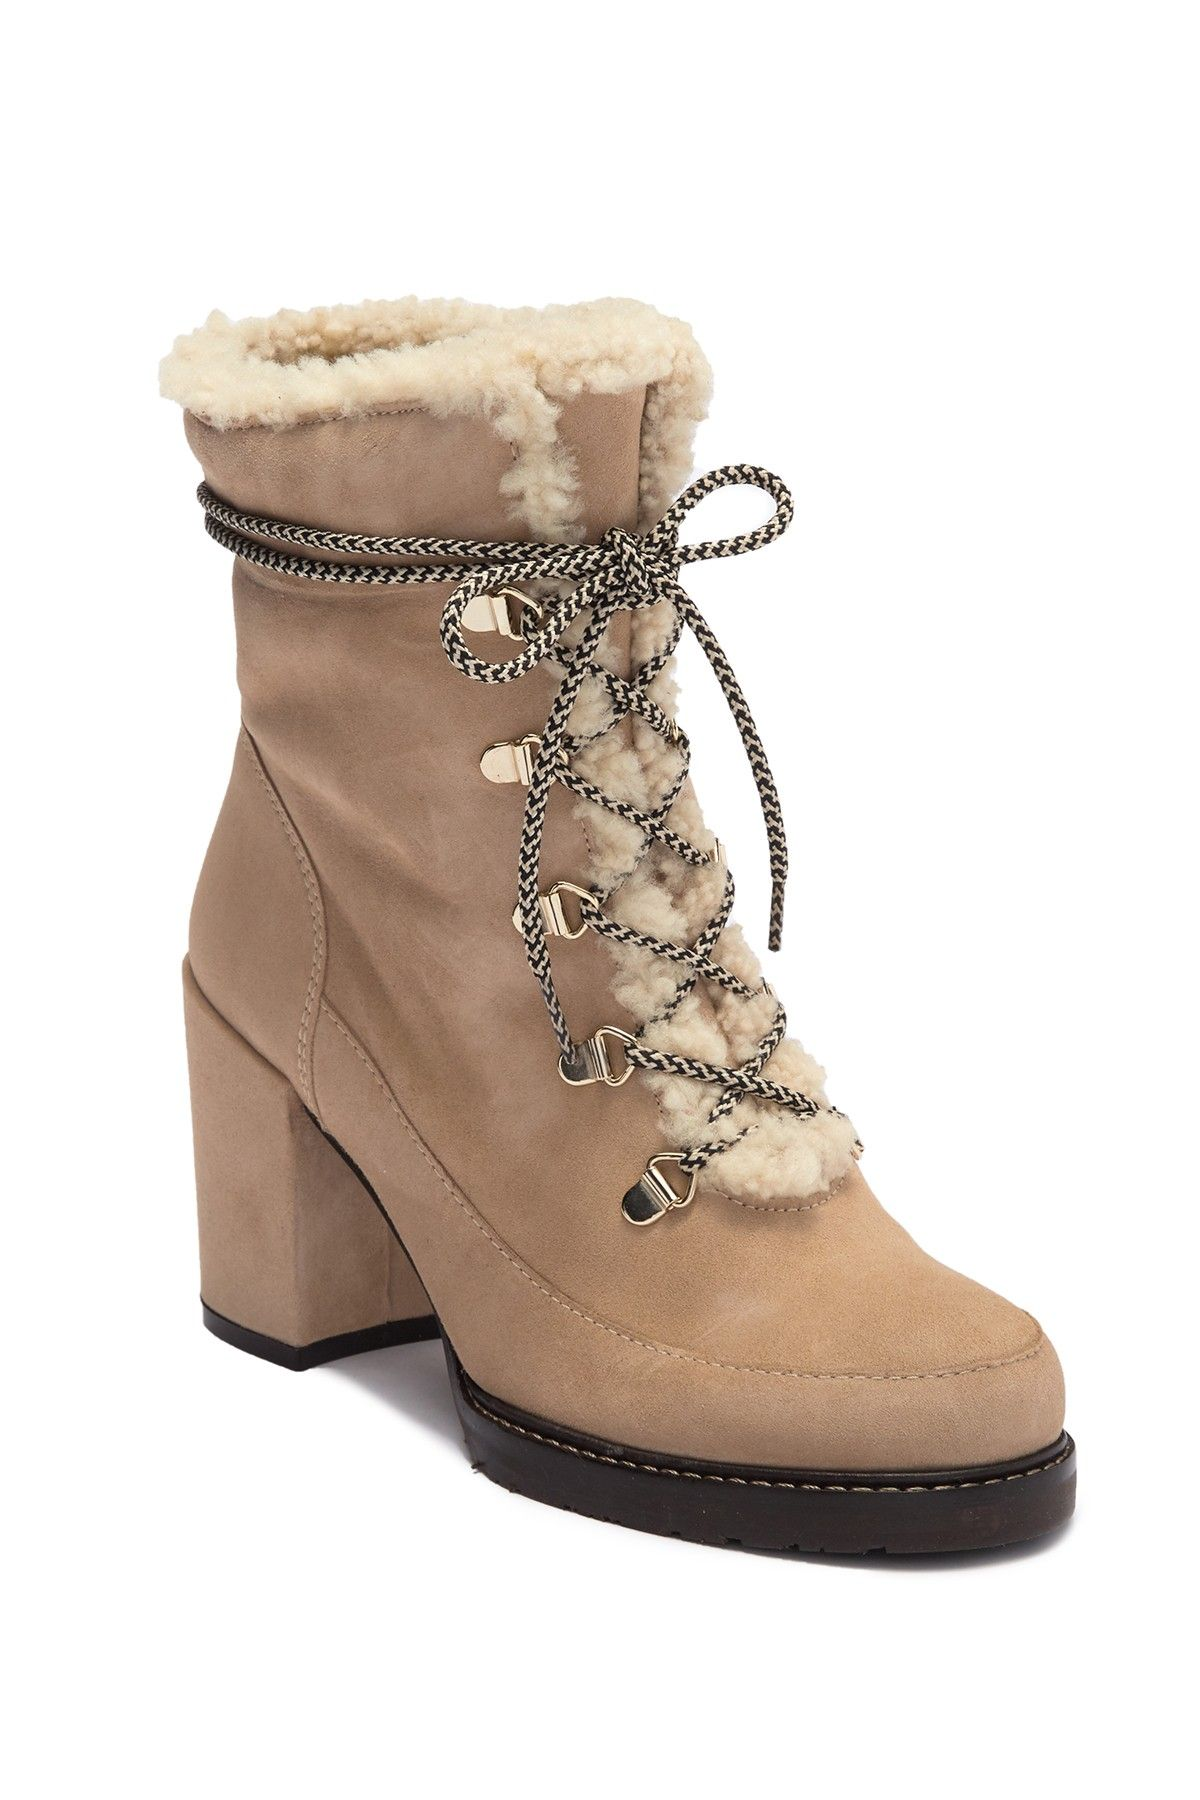 e58612daf90 Stuart Weitzman - Yukon Genuine Shearling Lined Hiker Boot is now 49 ...